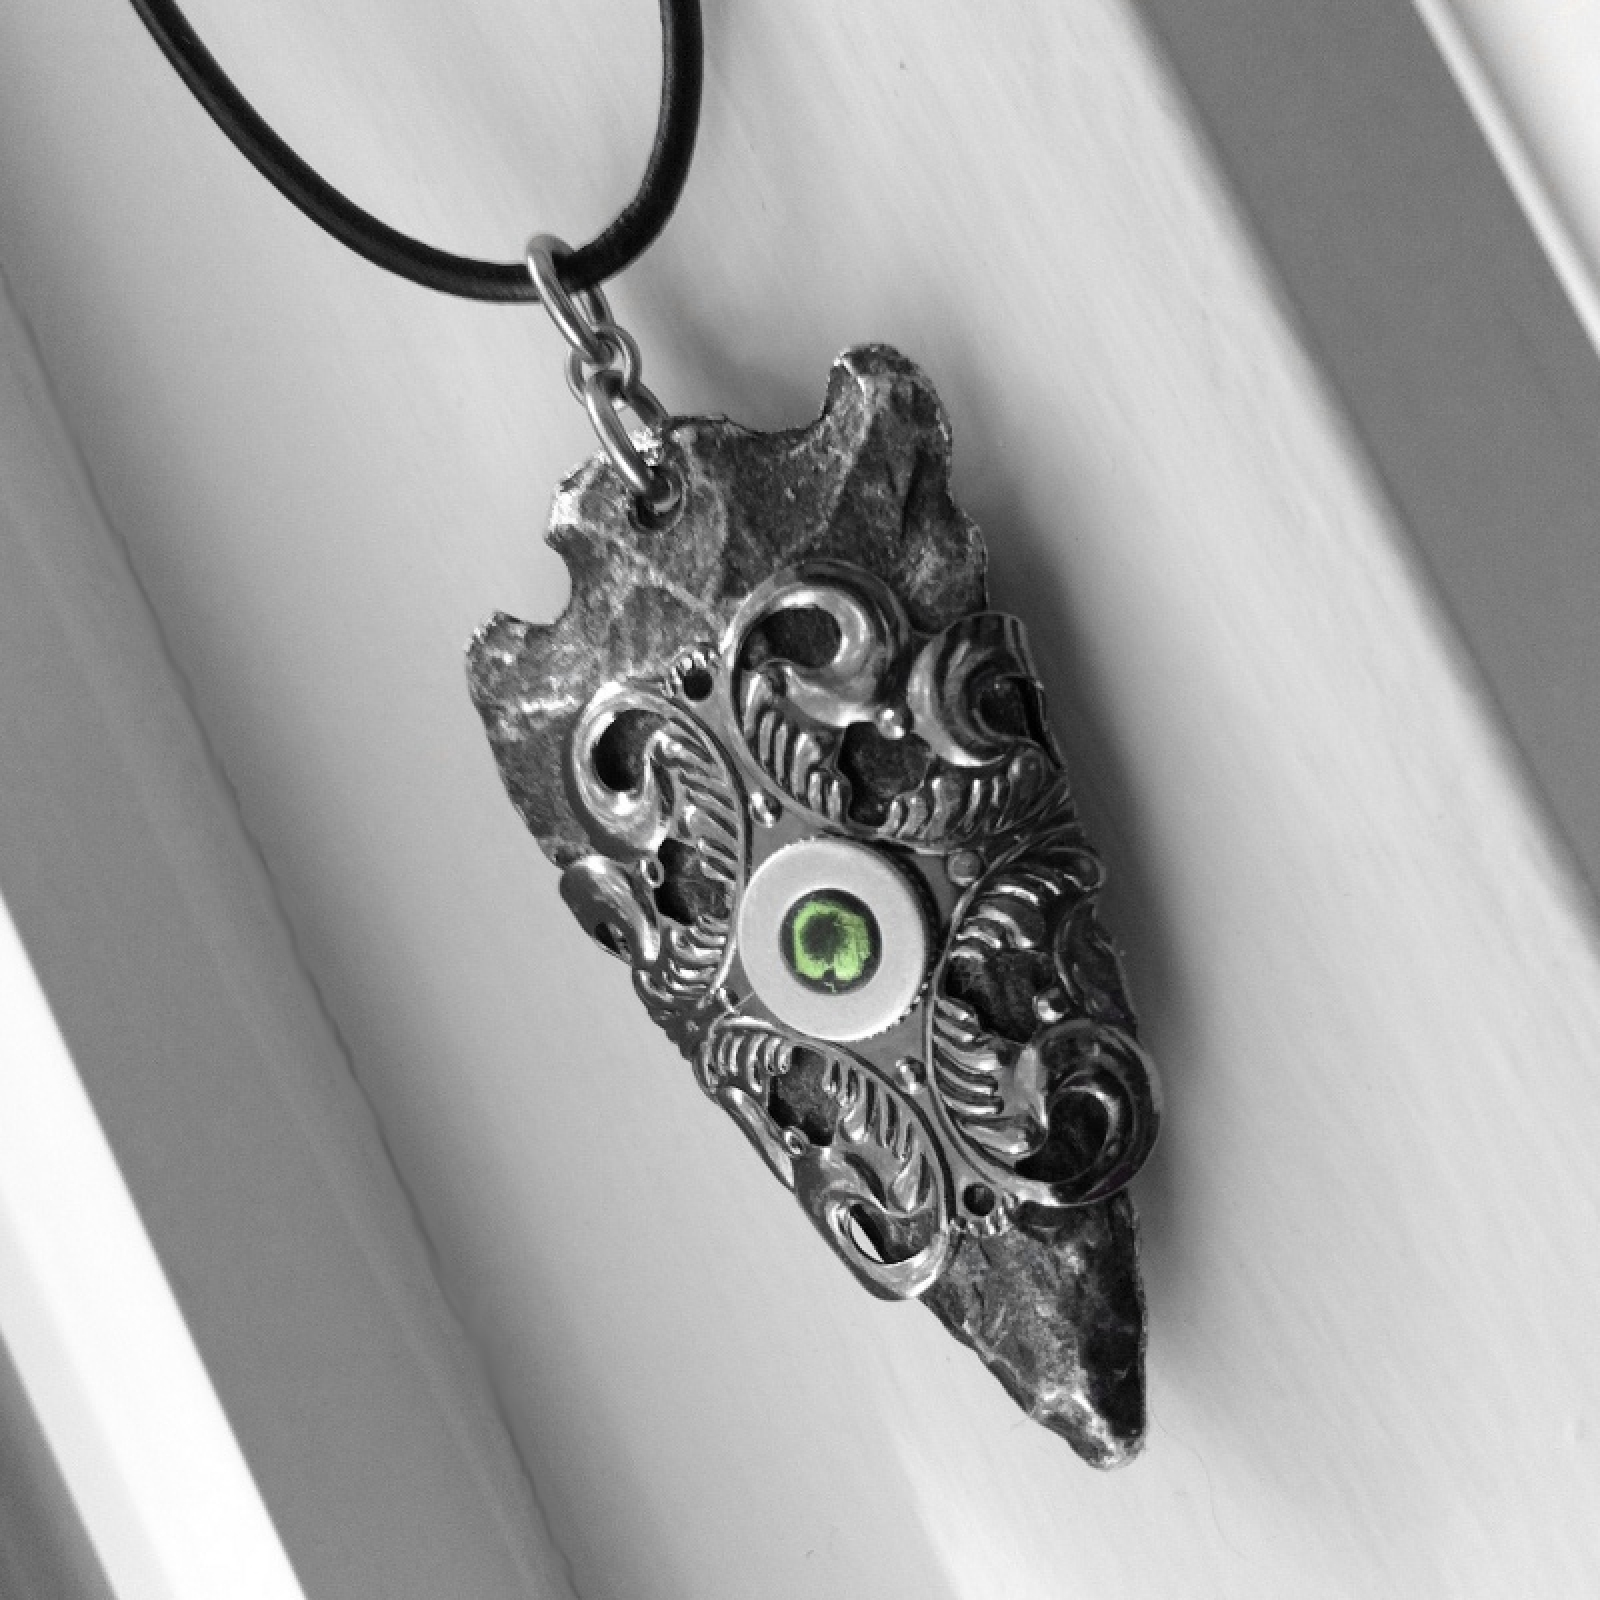 Tvd season 5 jewelry arrowhead necklace gothic filigree design silver arrowhead necklace mens jewelry mozeypictures Gallery